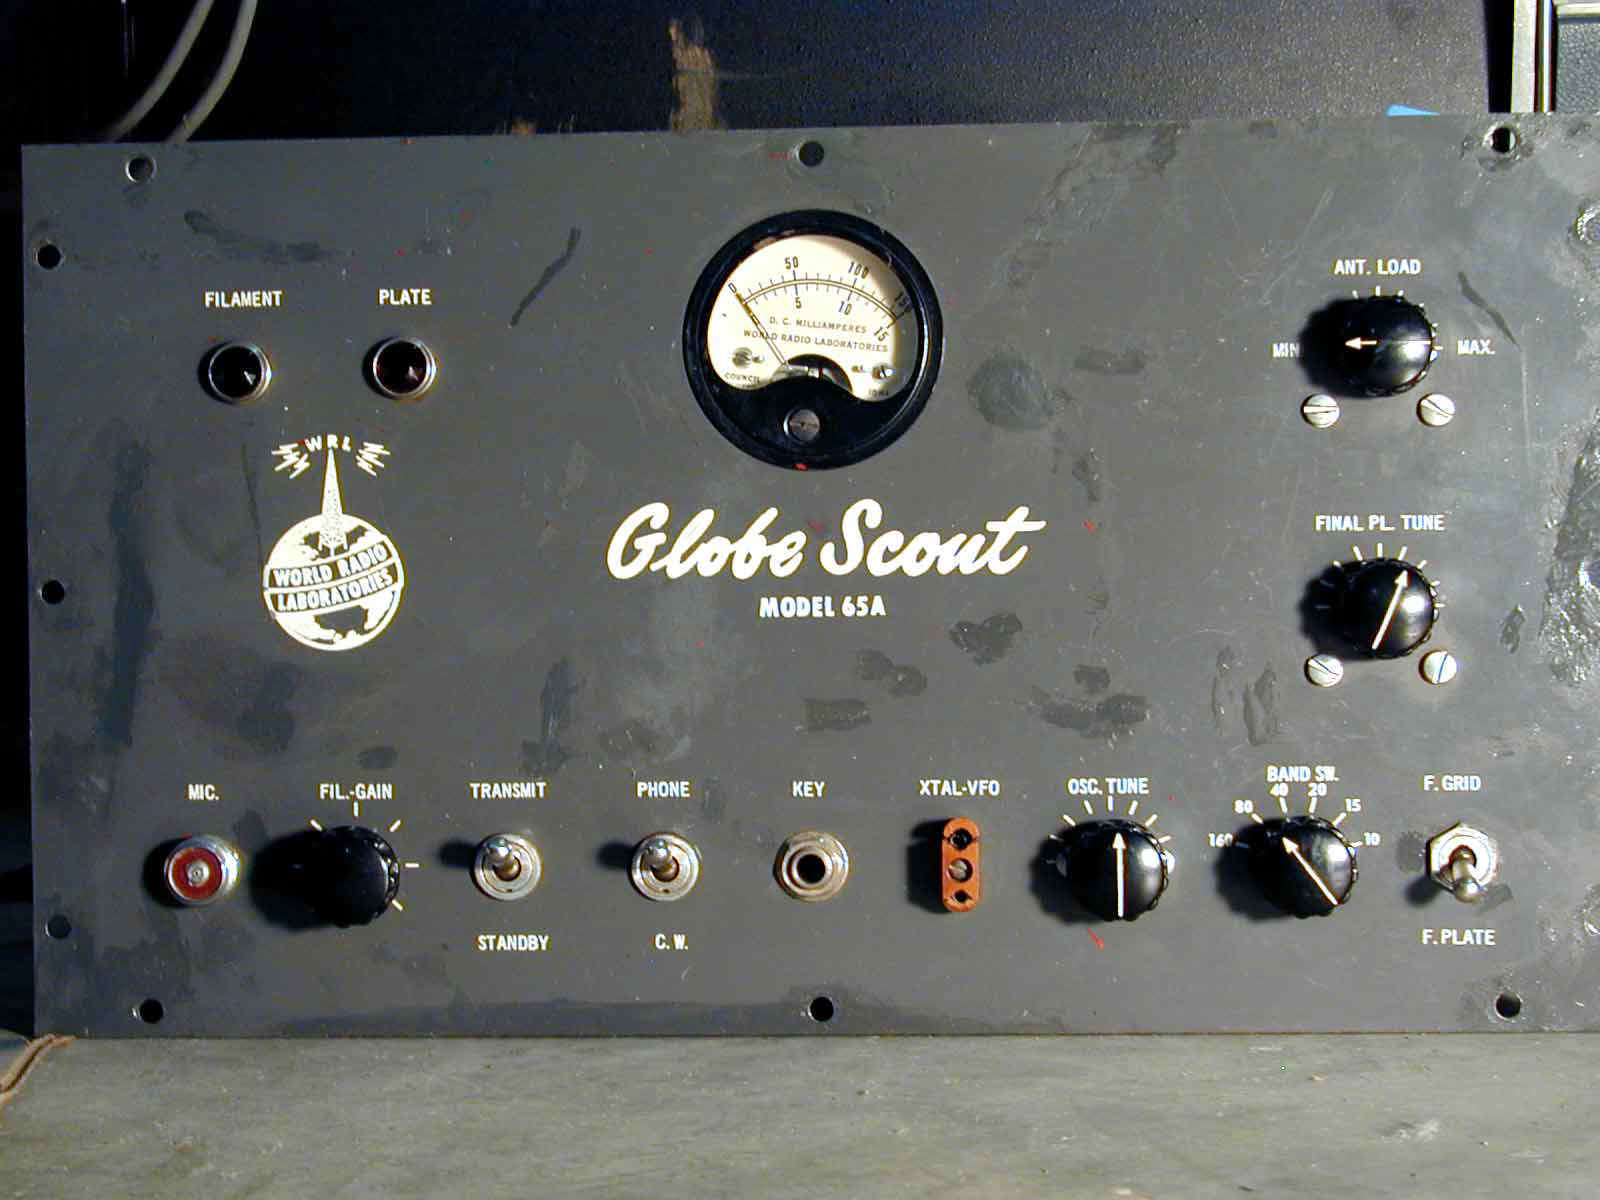 Globe Scout 65A rough original front panel